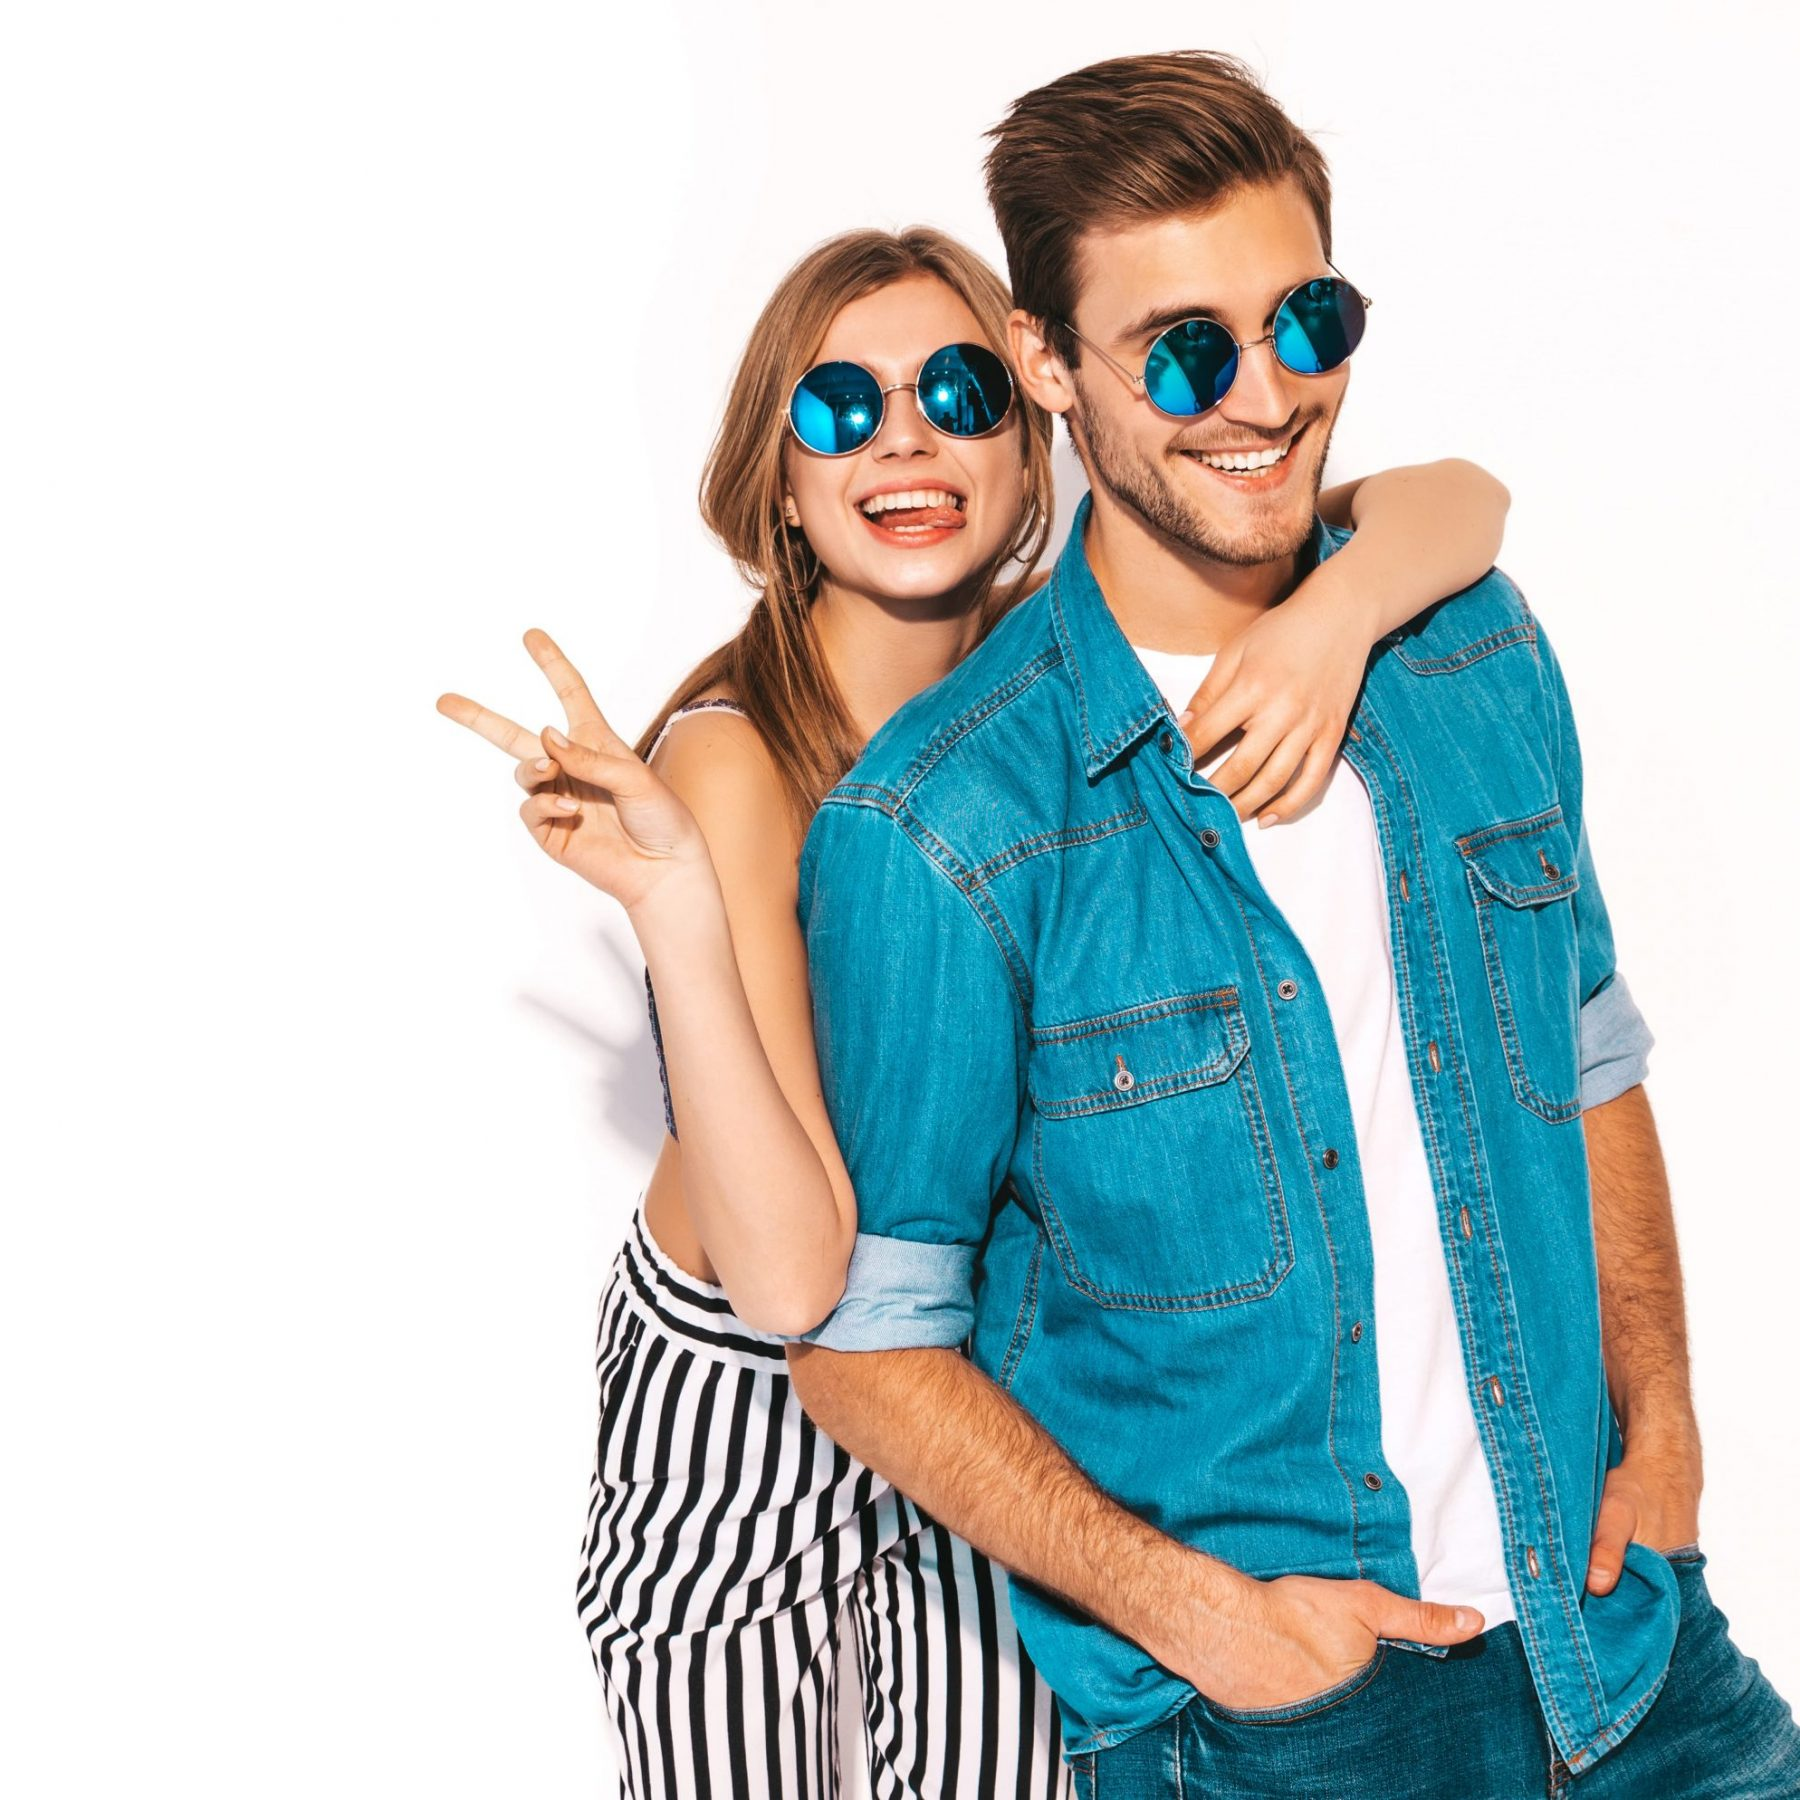 portrait-of-smiling-beautiful-girl-and-her-handsome-boyfriend-laughing-happy-cheerful-couple-in-sunglasses-and-showing-peace-sign (1)